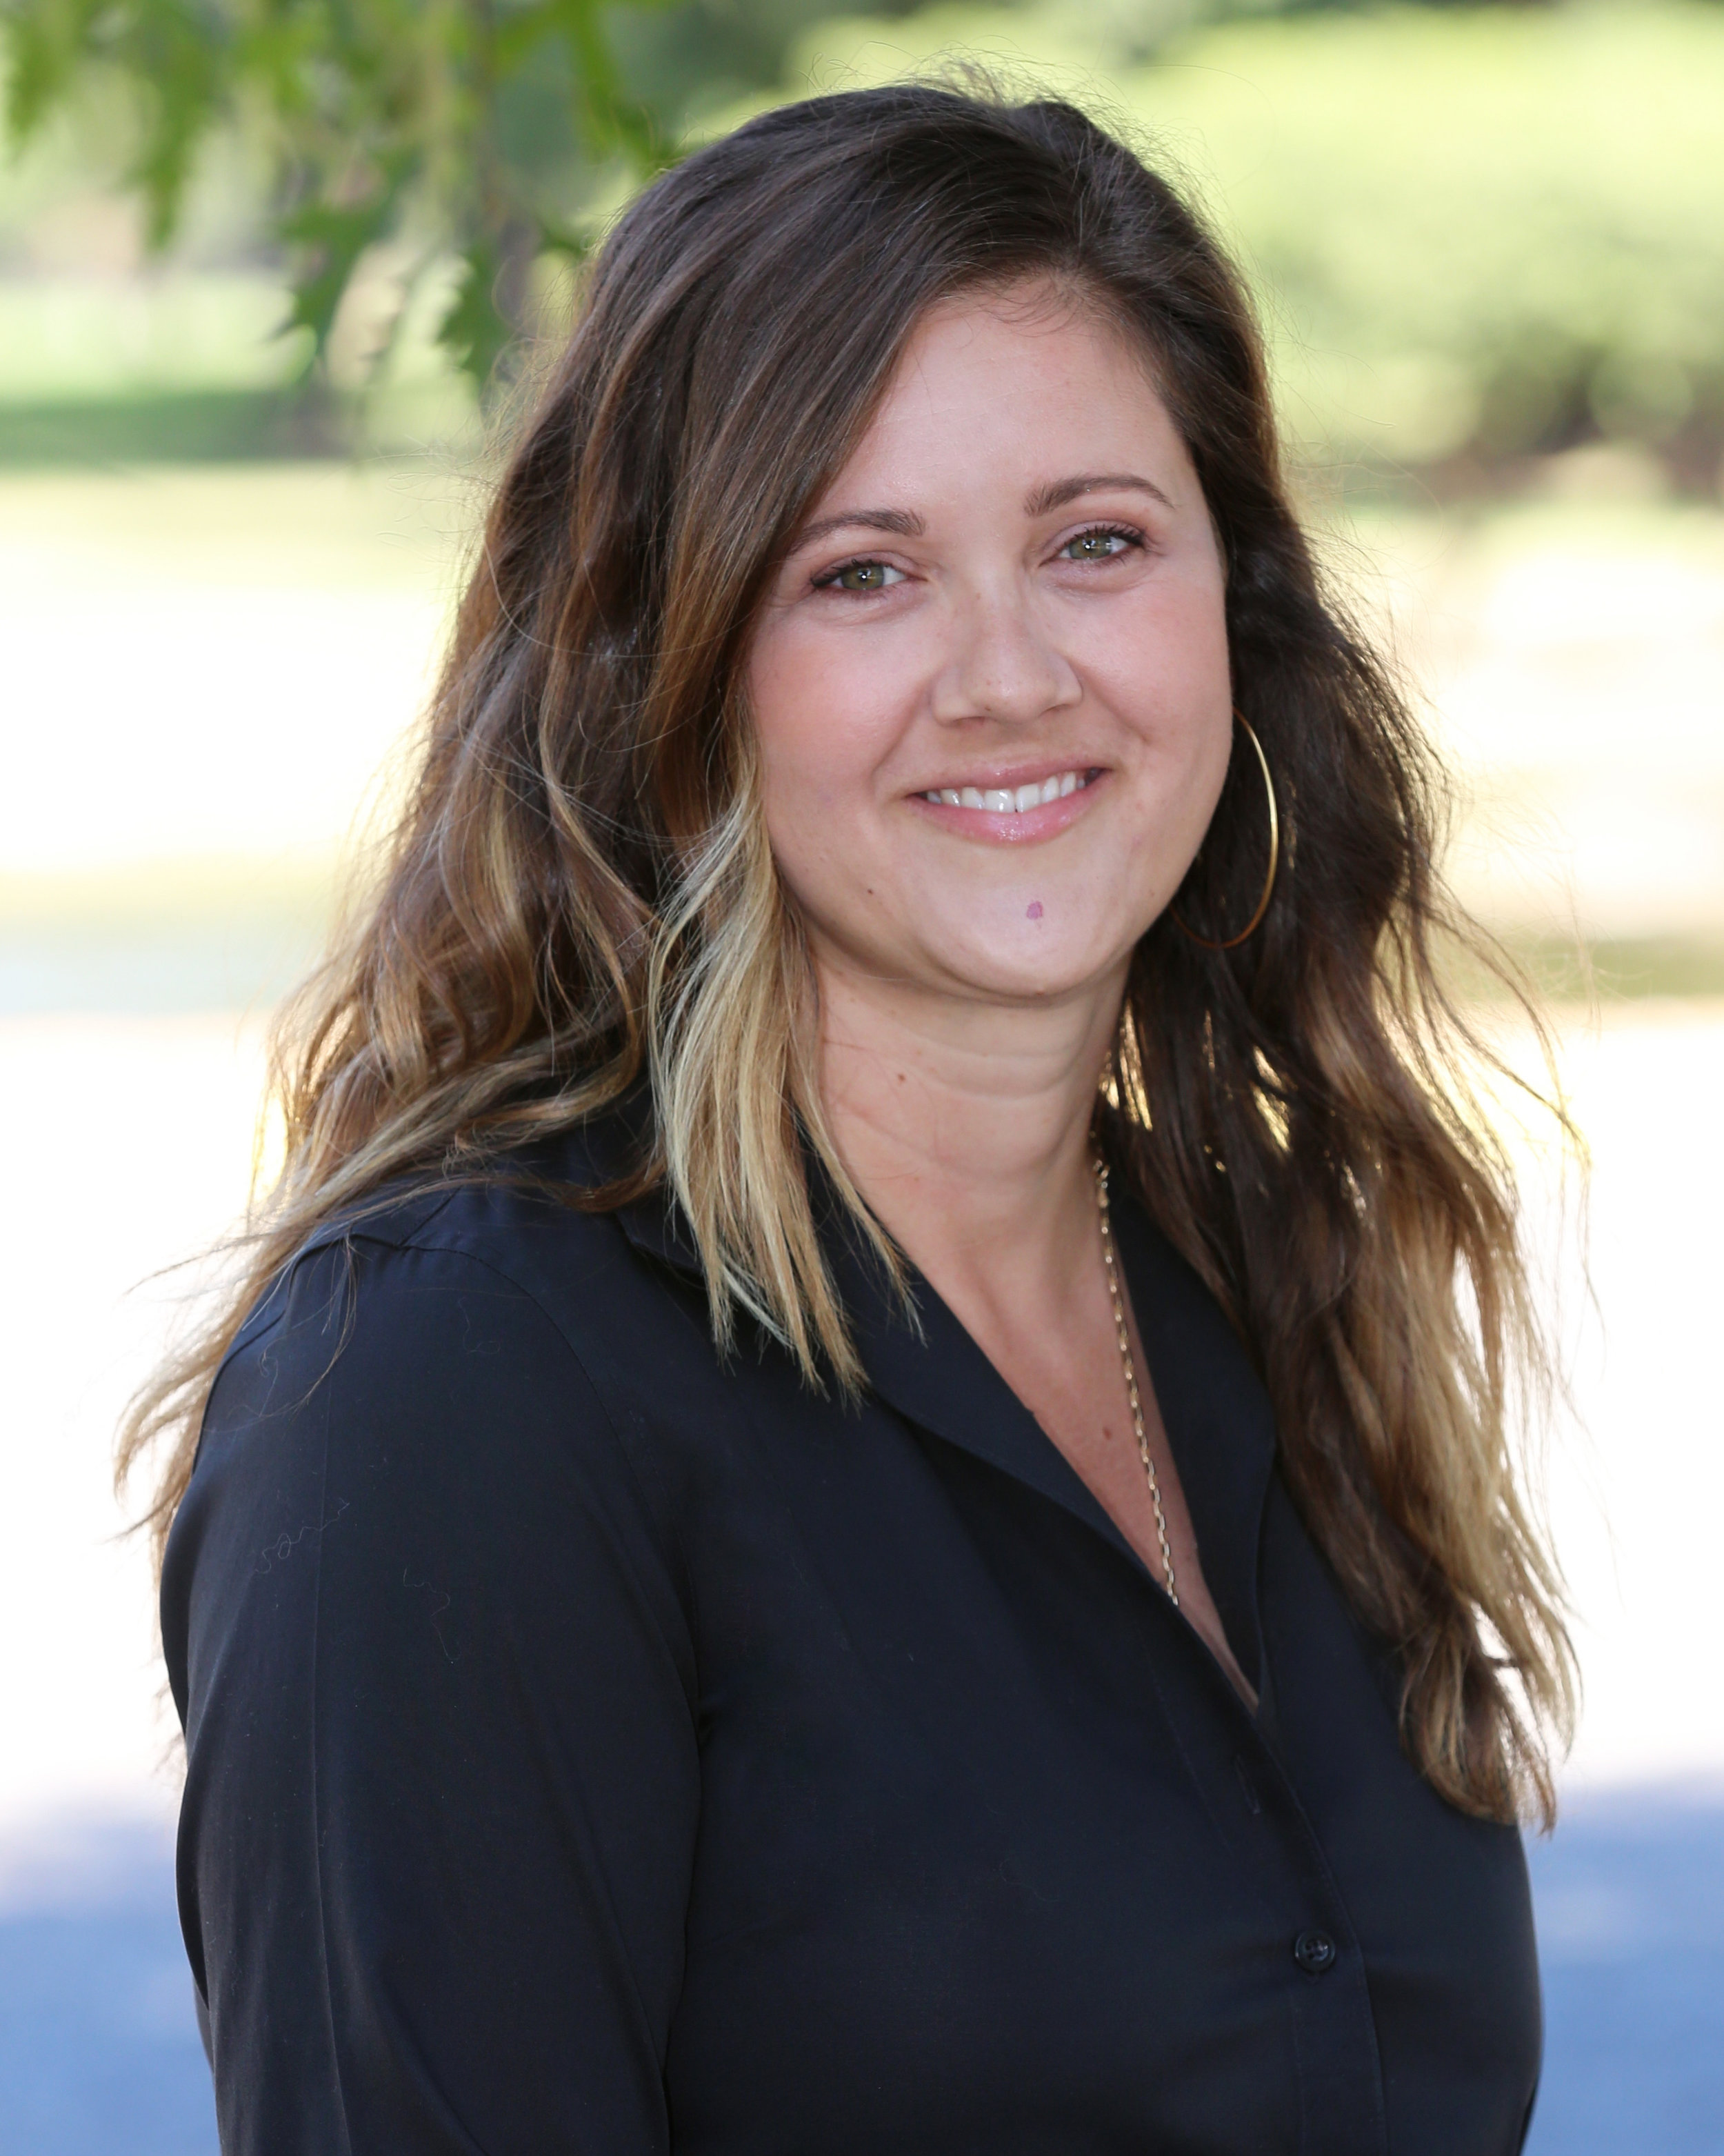 Brooke Lonergan Director of Operations - Brooke uses her extraordinary organizational and process skills to keep our business operations running smoothly. She supports and manages operations including billing, contracts, compliance, HR, and credit.See full bio on LinkedIn.